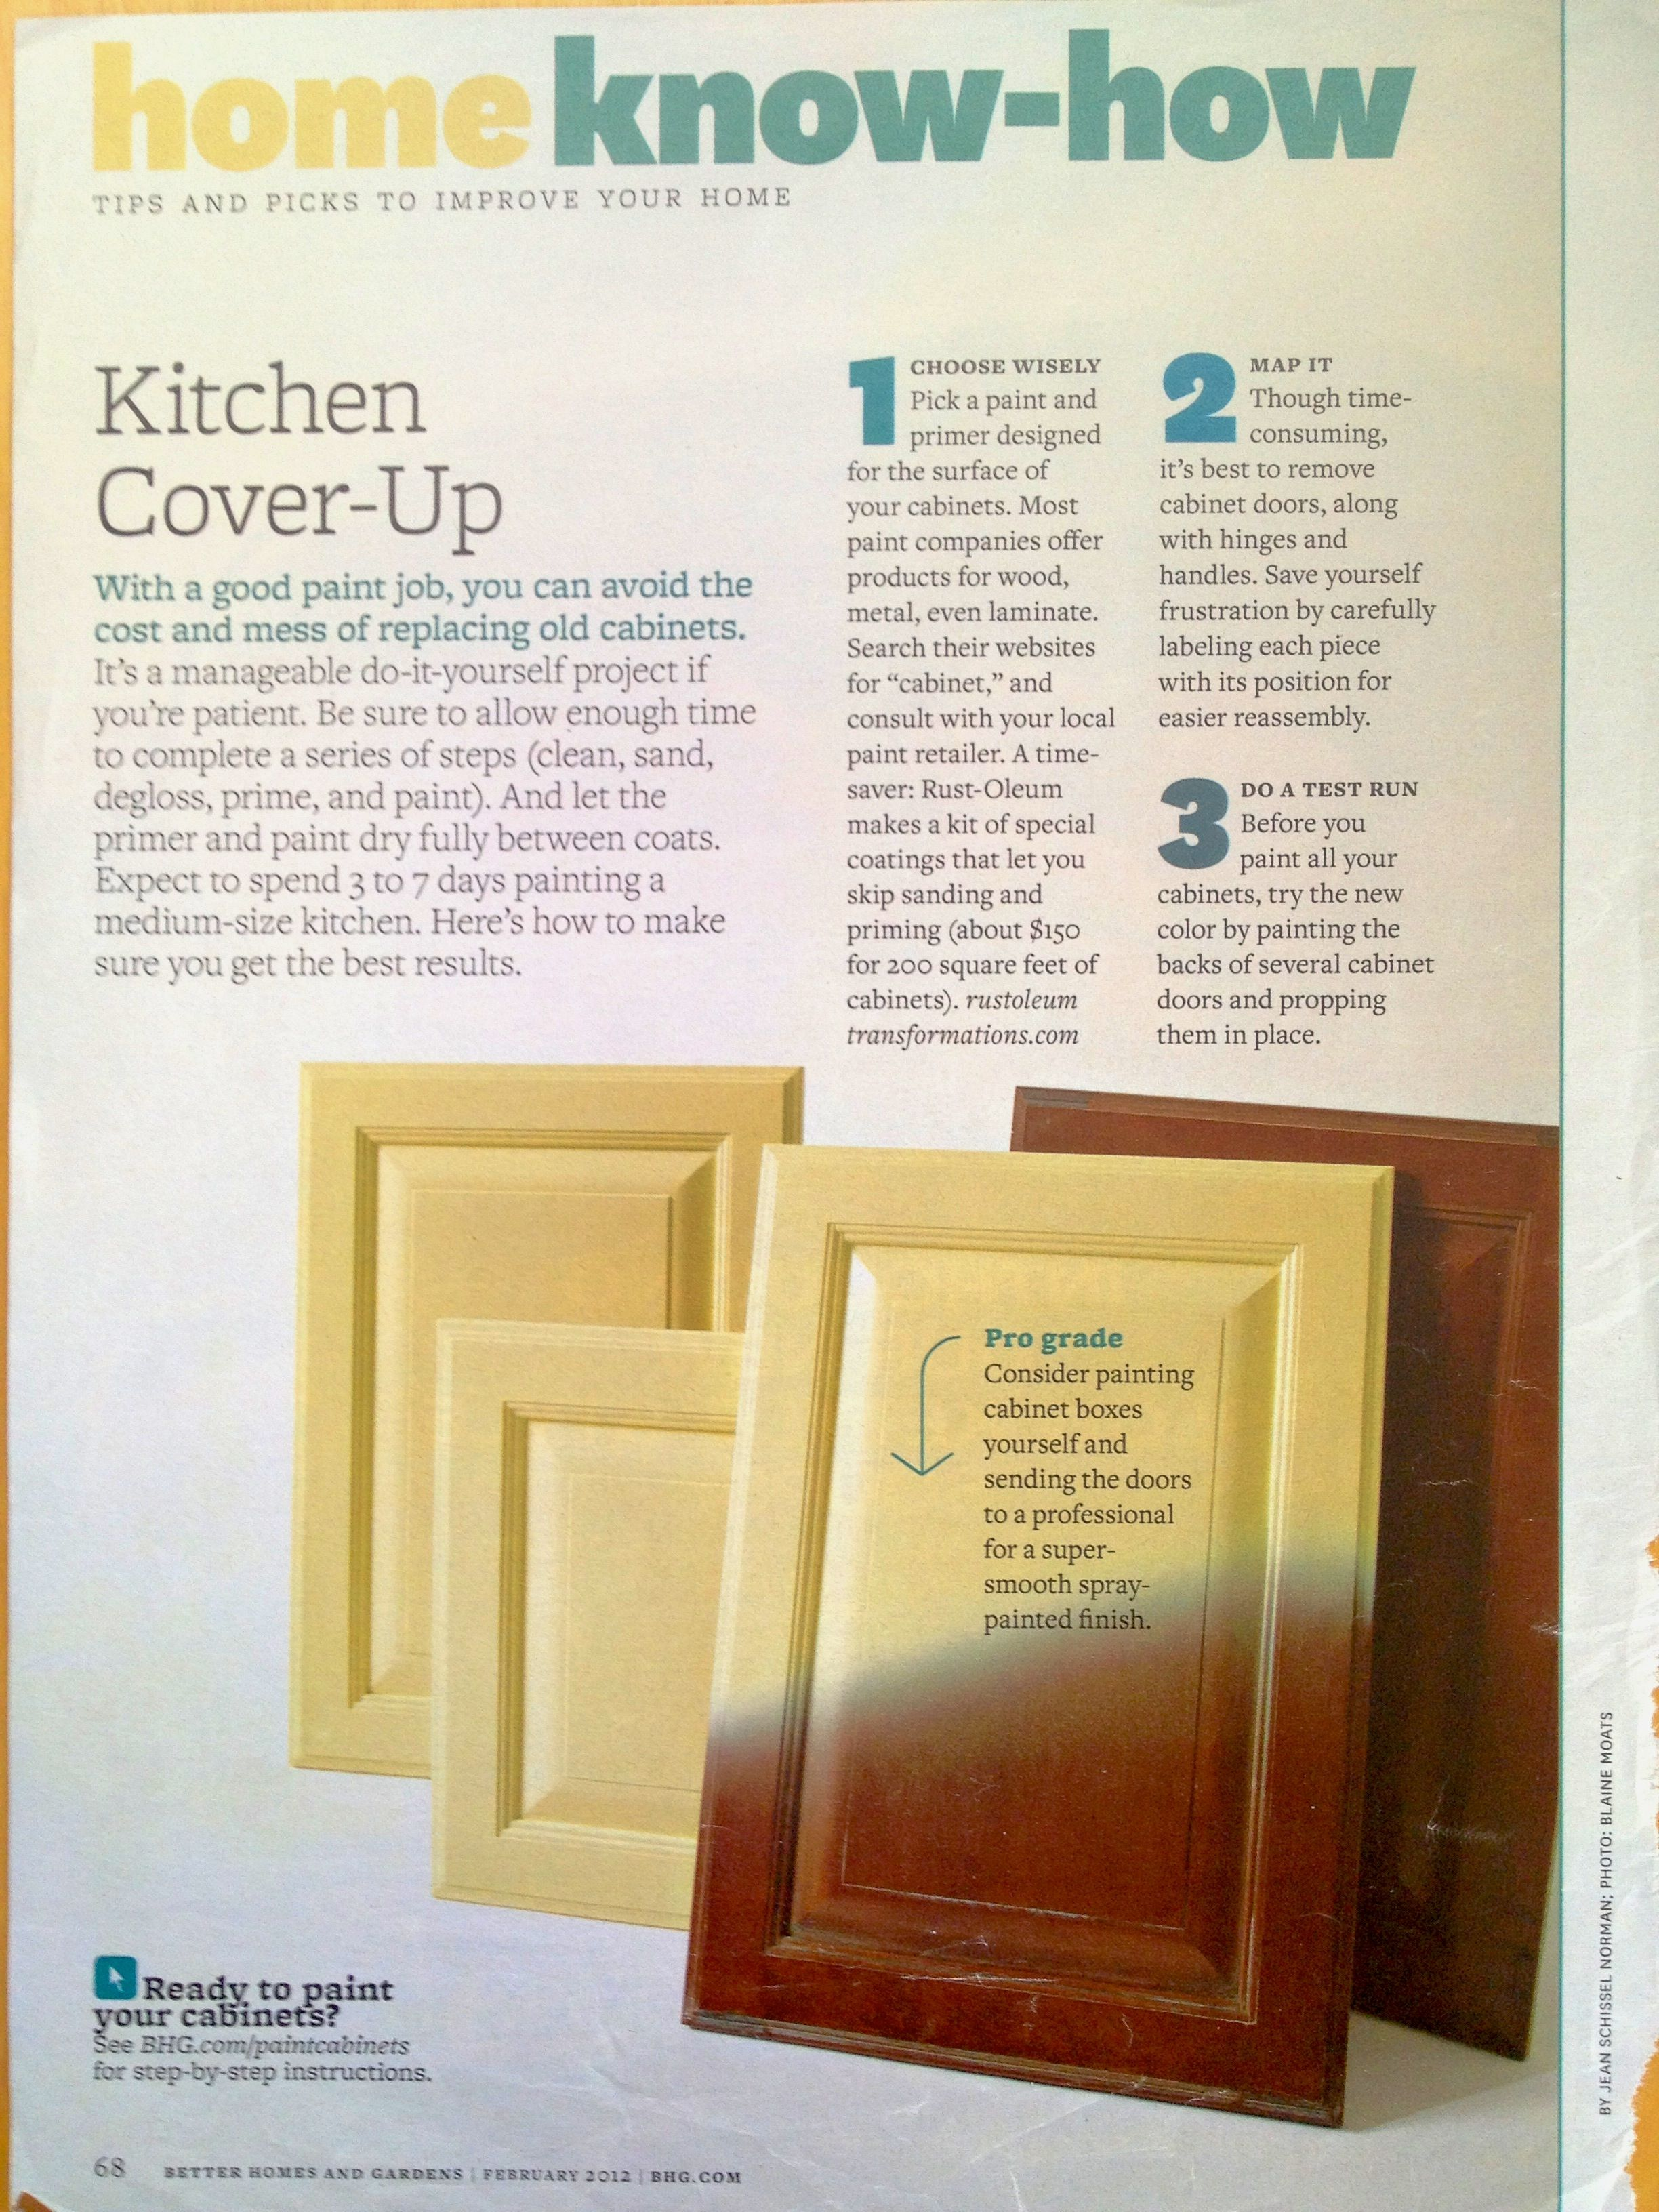 DIY tips for painting kitchen cabinets | Kitchen | Pinterest ...